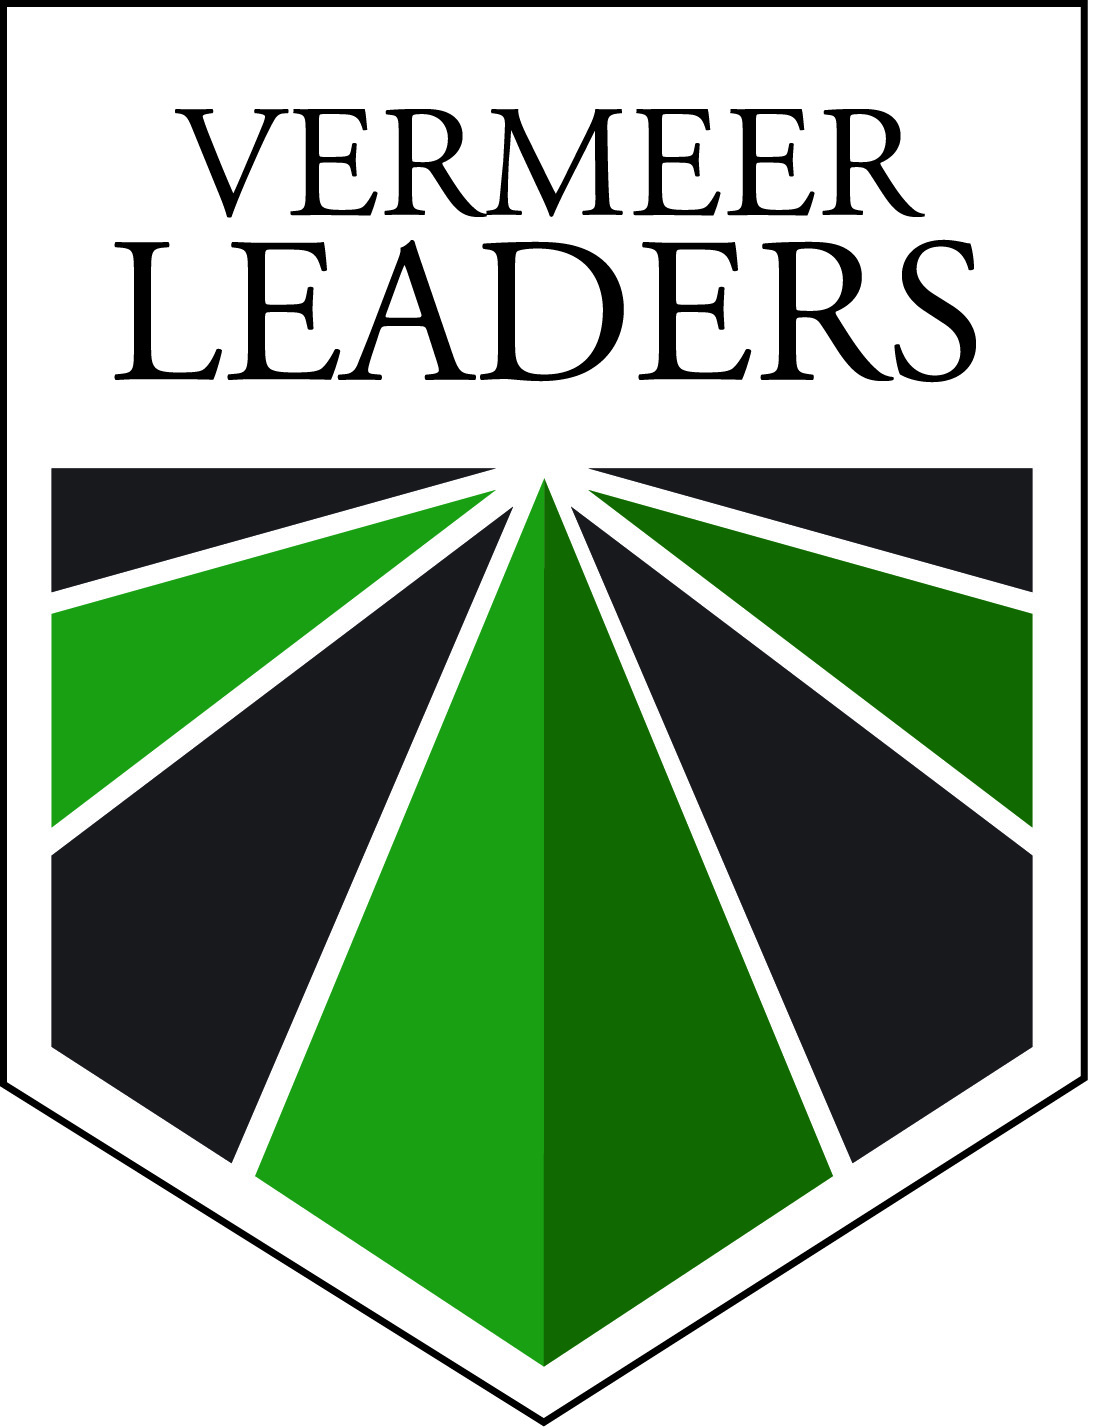 Vermeer Leaders logo